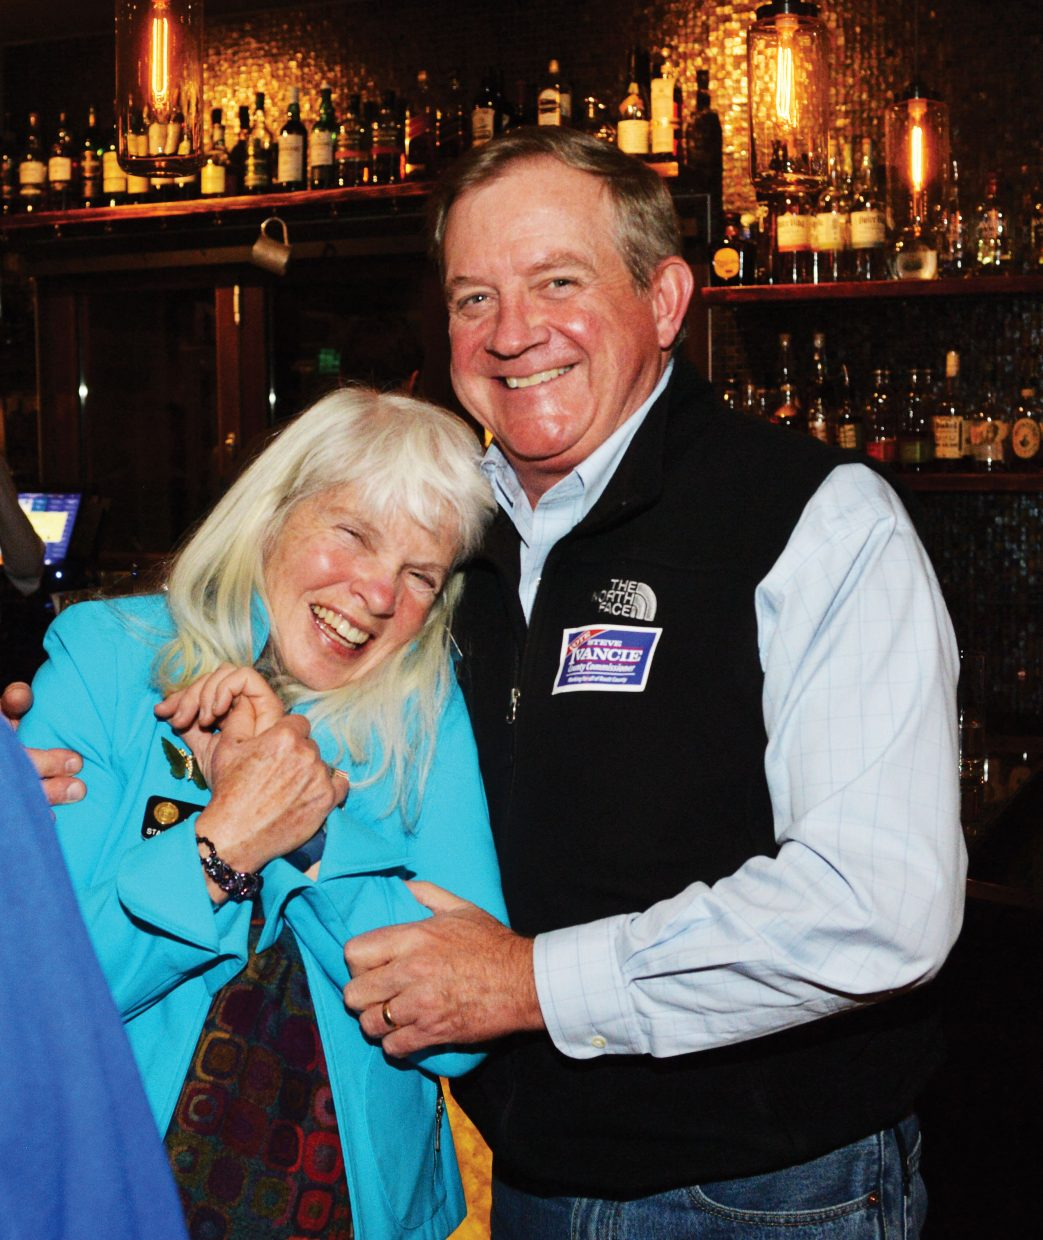 Democrats Diane Mitsch Bush and Steve Ivancie hug at a Democratic watch party at Aurum Tuesday night. Mitsch Bush defeated Chuck McConnell to retain her Colorado House District 26 seat for another term. In an extremely tight county commissioner's race, Ivancie was defeated by Republican Cari Hermacinski.